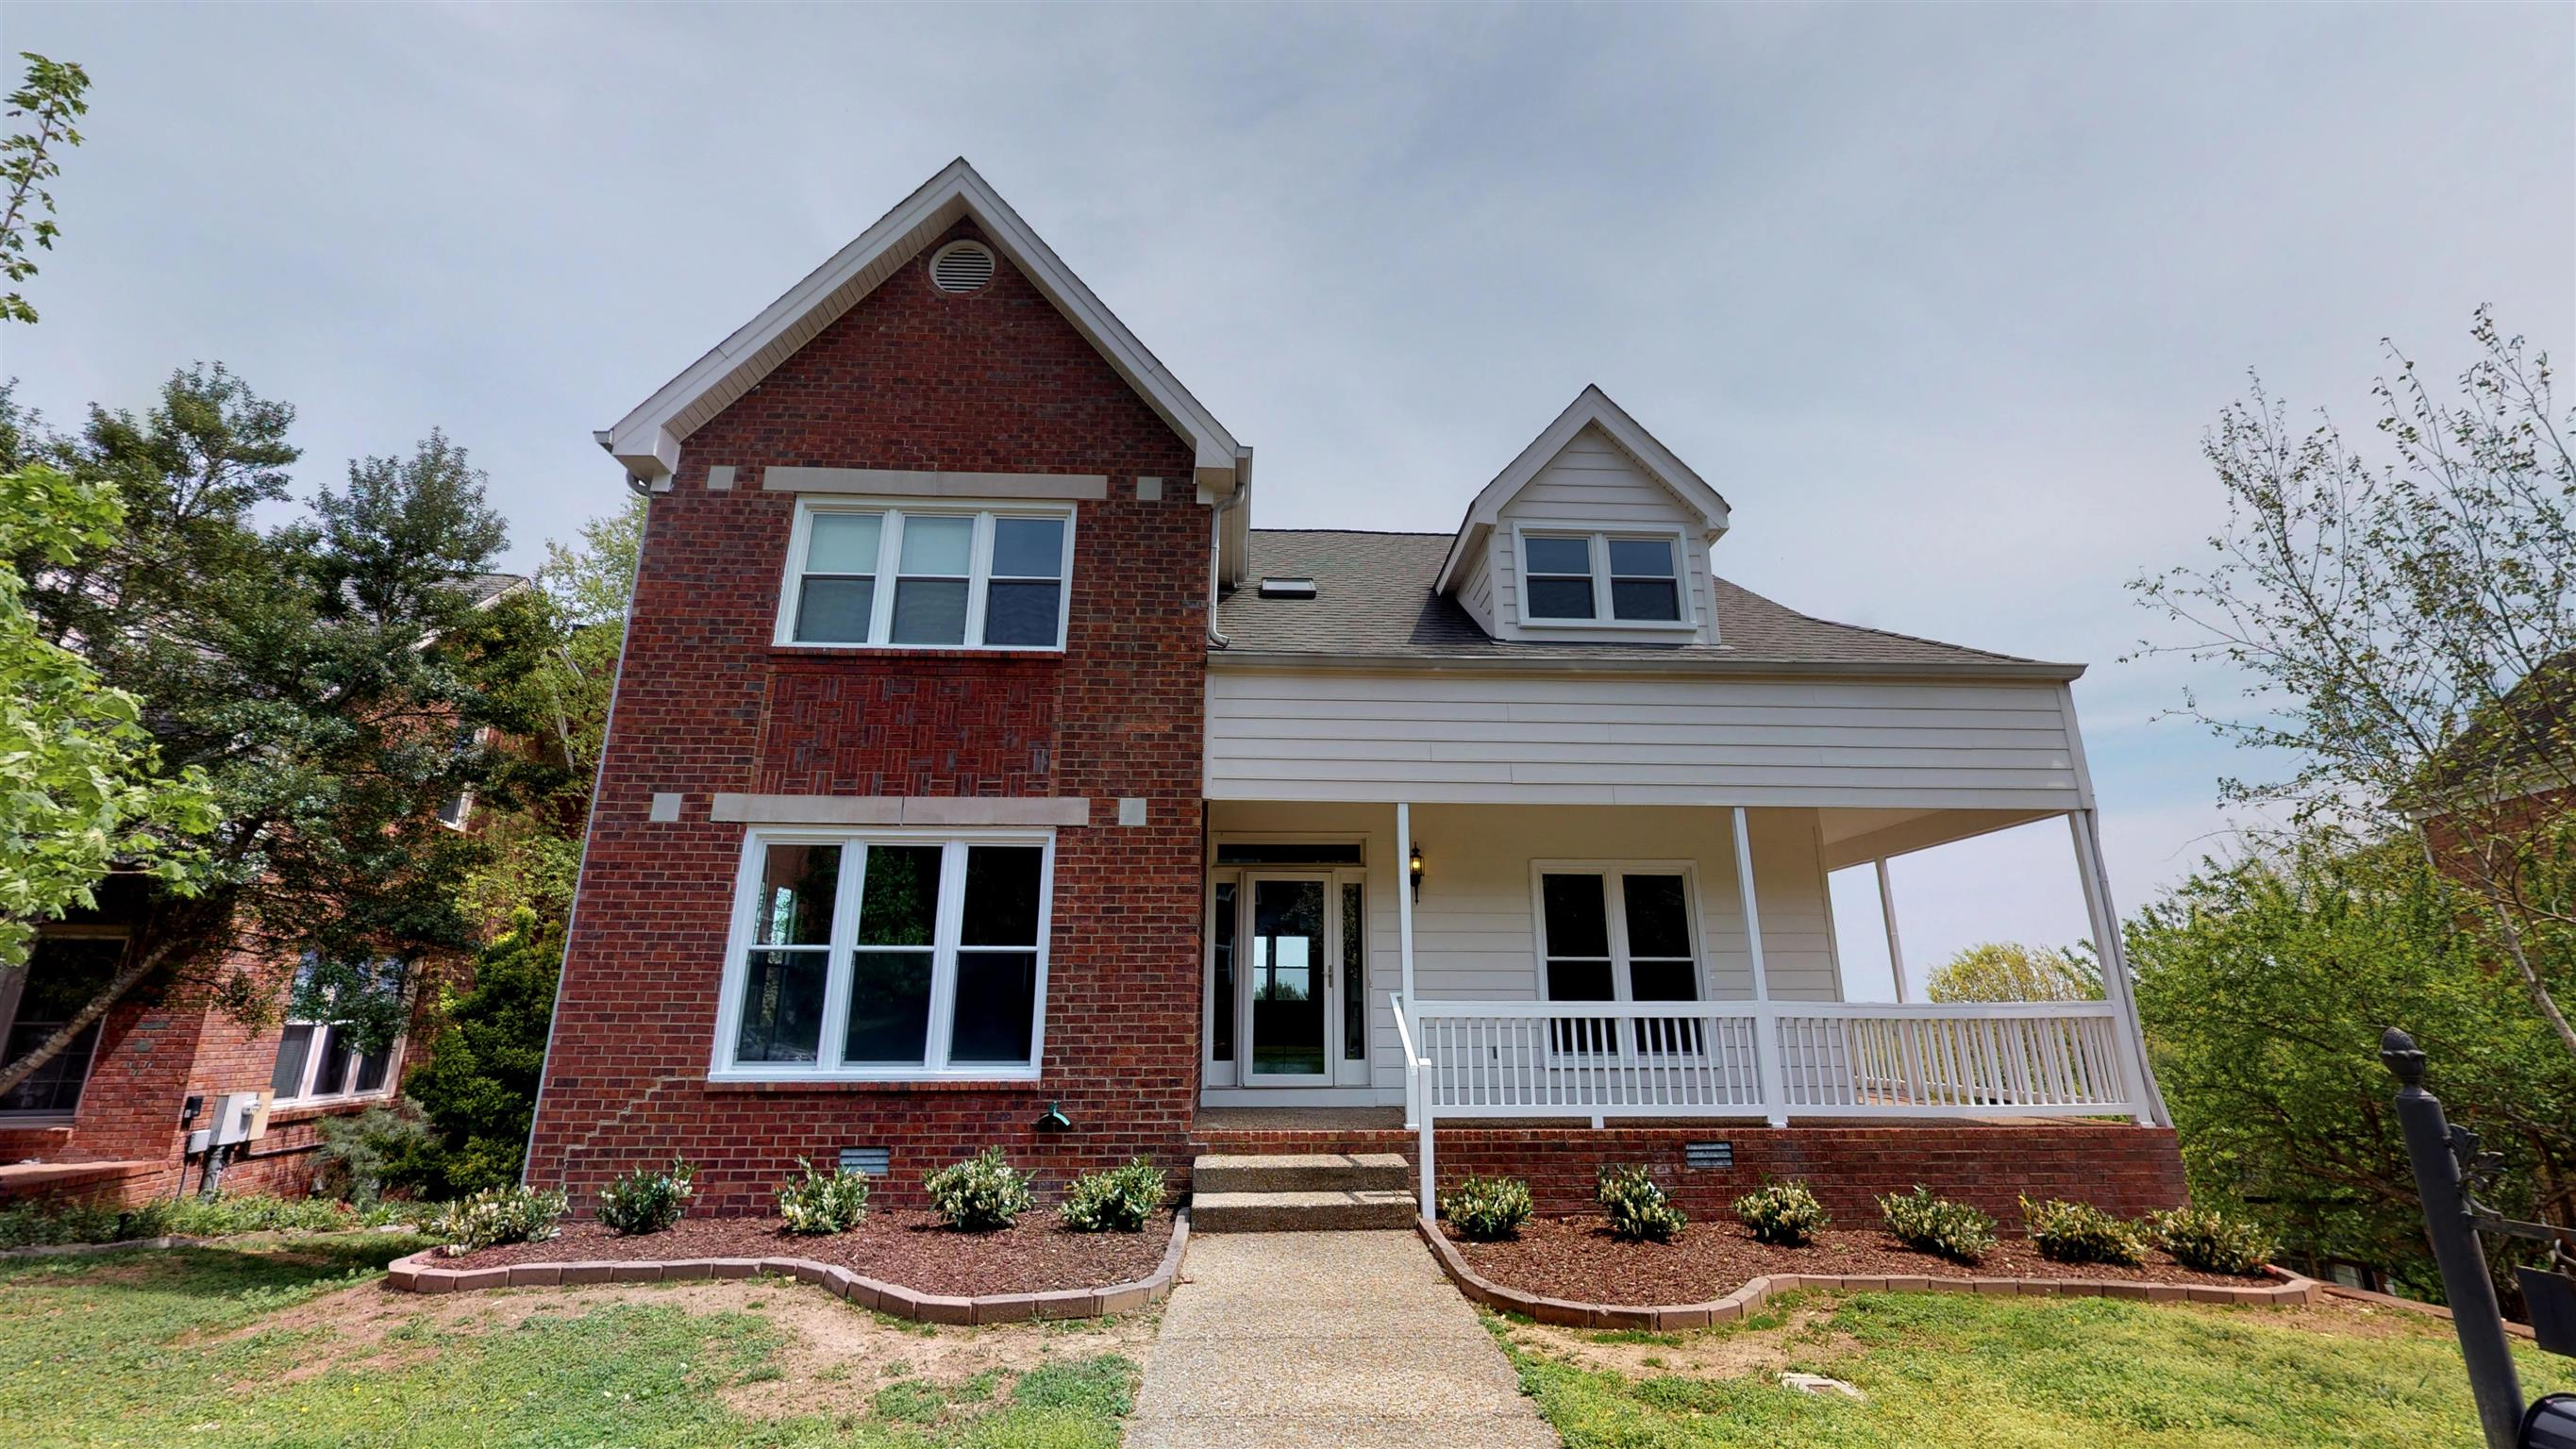 6316 Sweetgum Ln, Bellevue in Davidson County County, TN 37221 Home for Sale